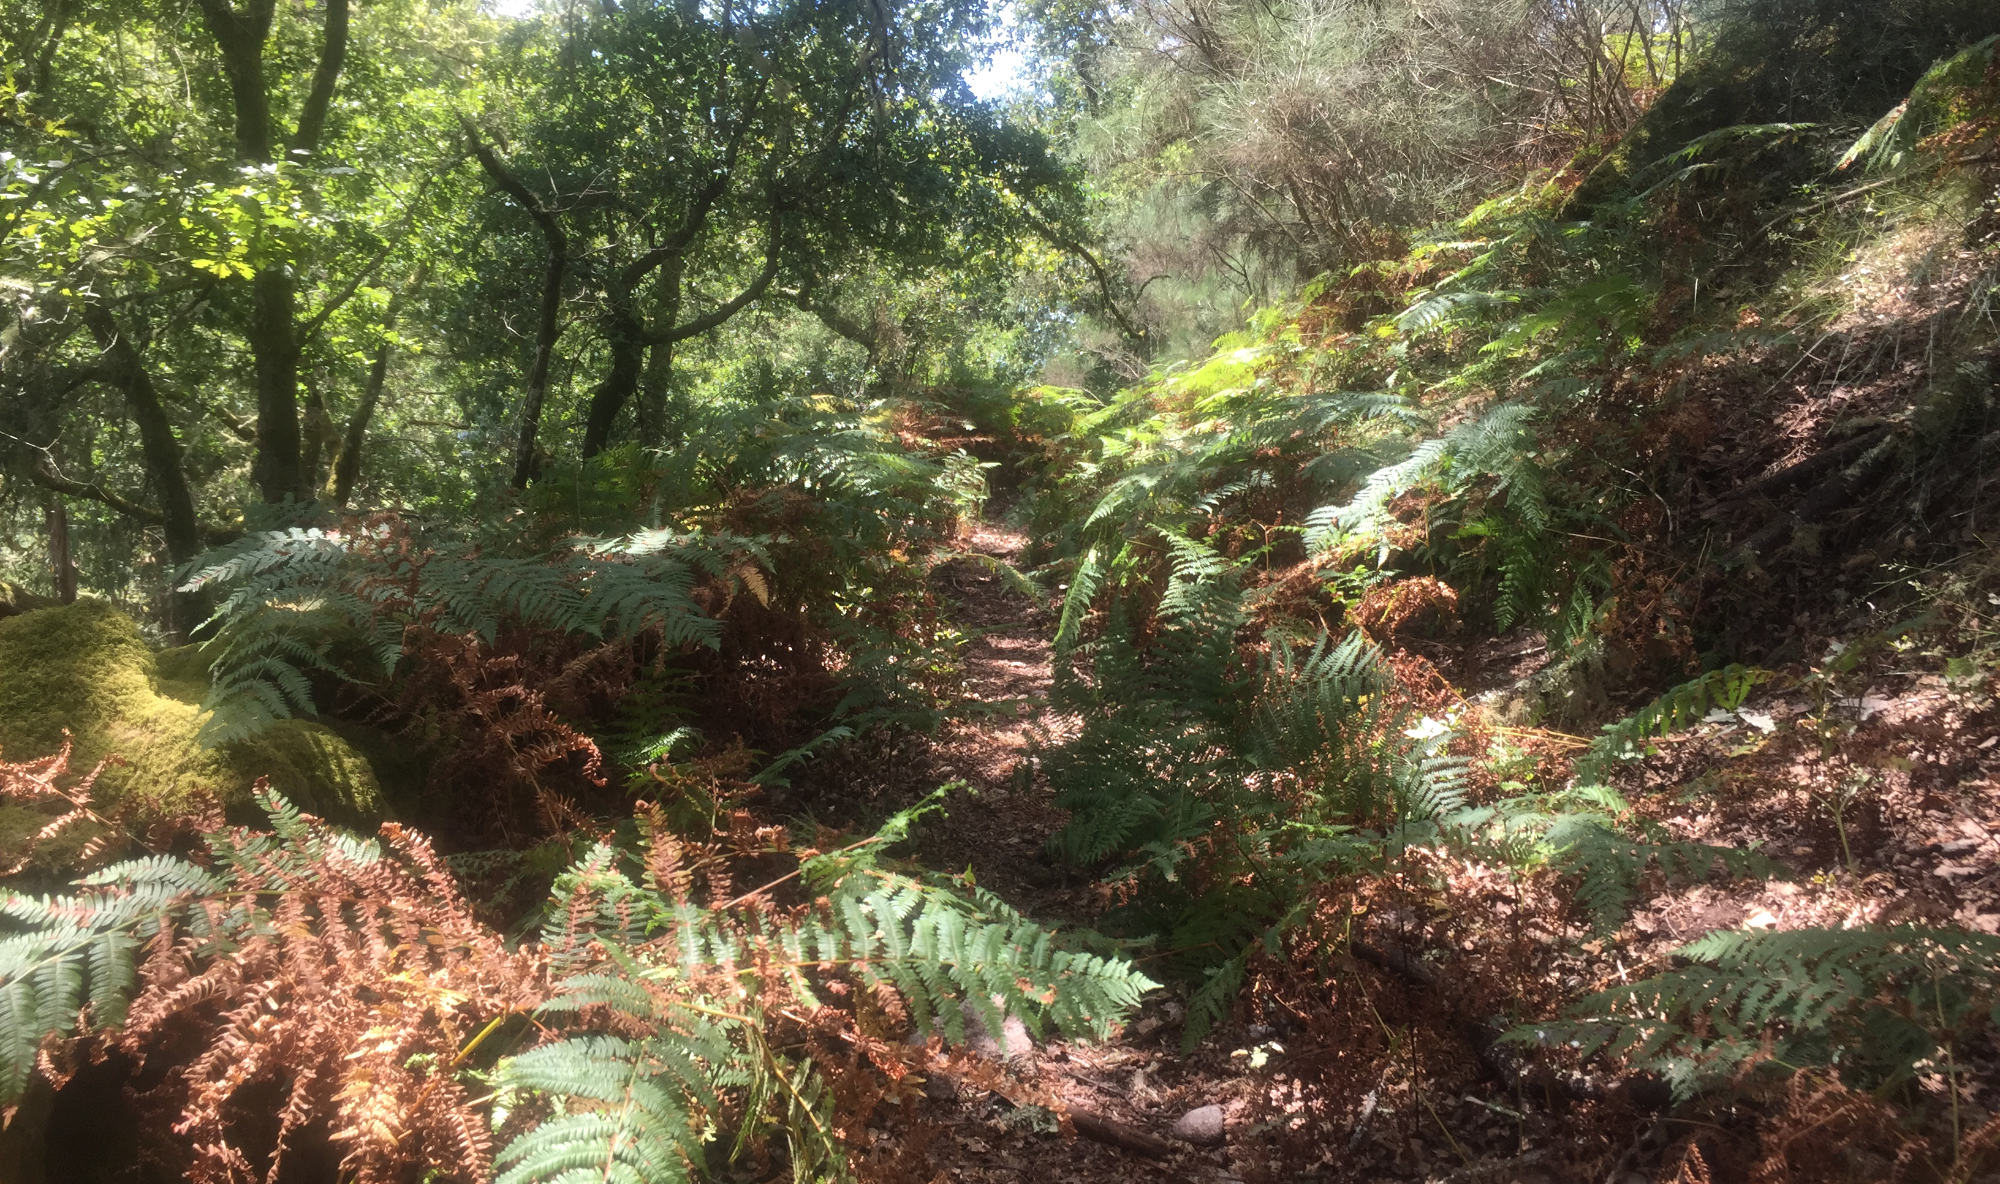 The trail becomes overgrown with bracken intruding on the path